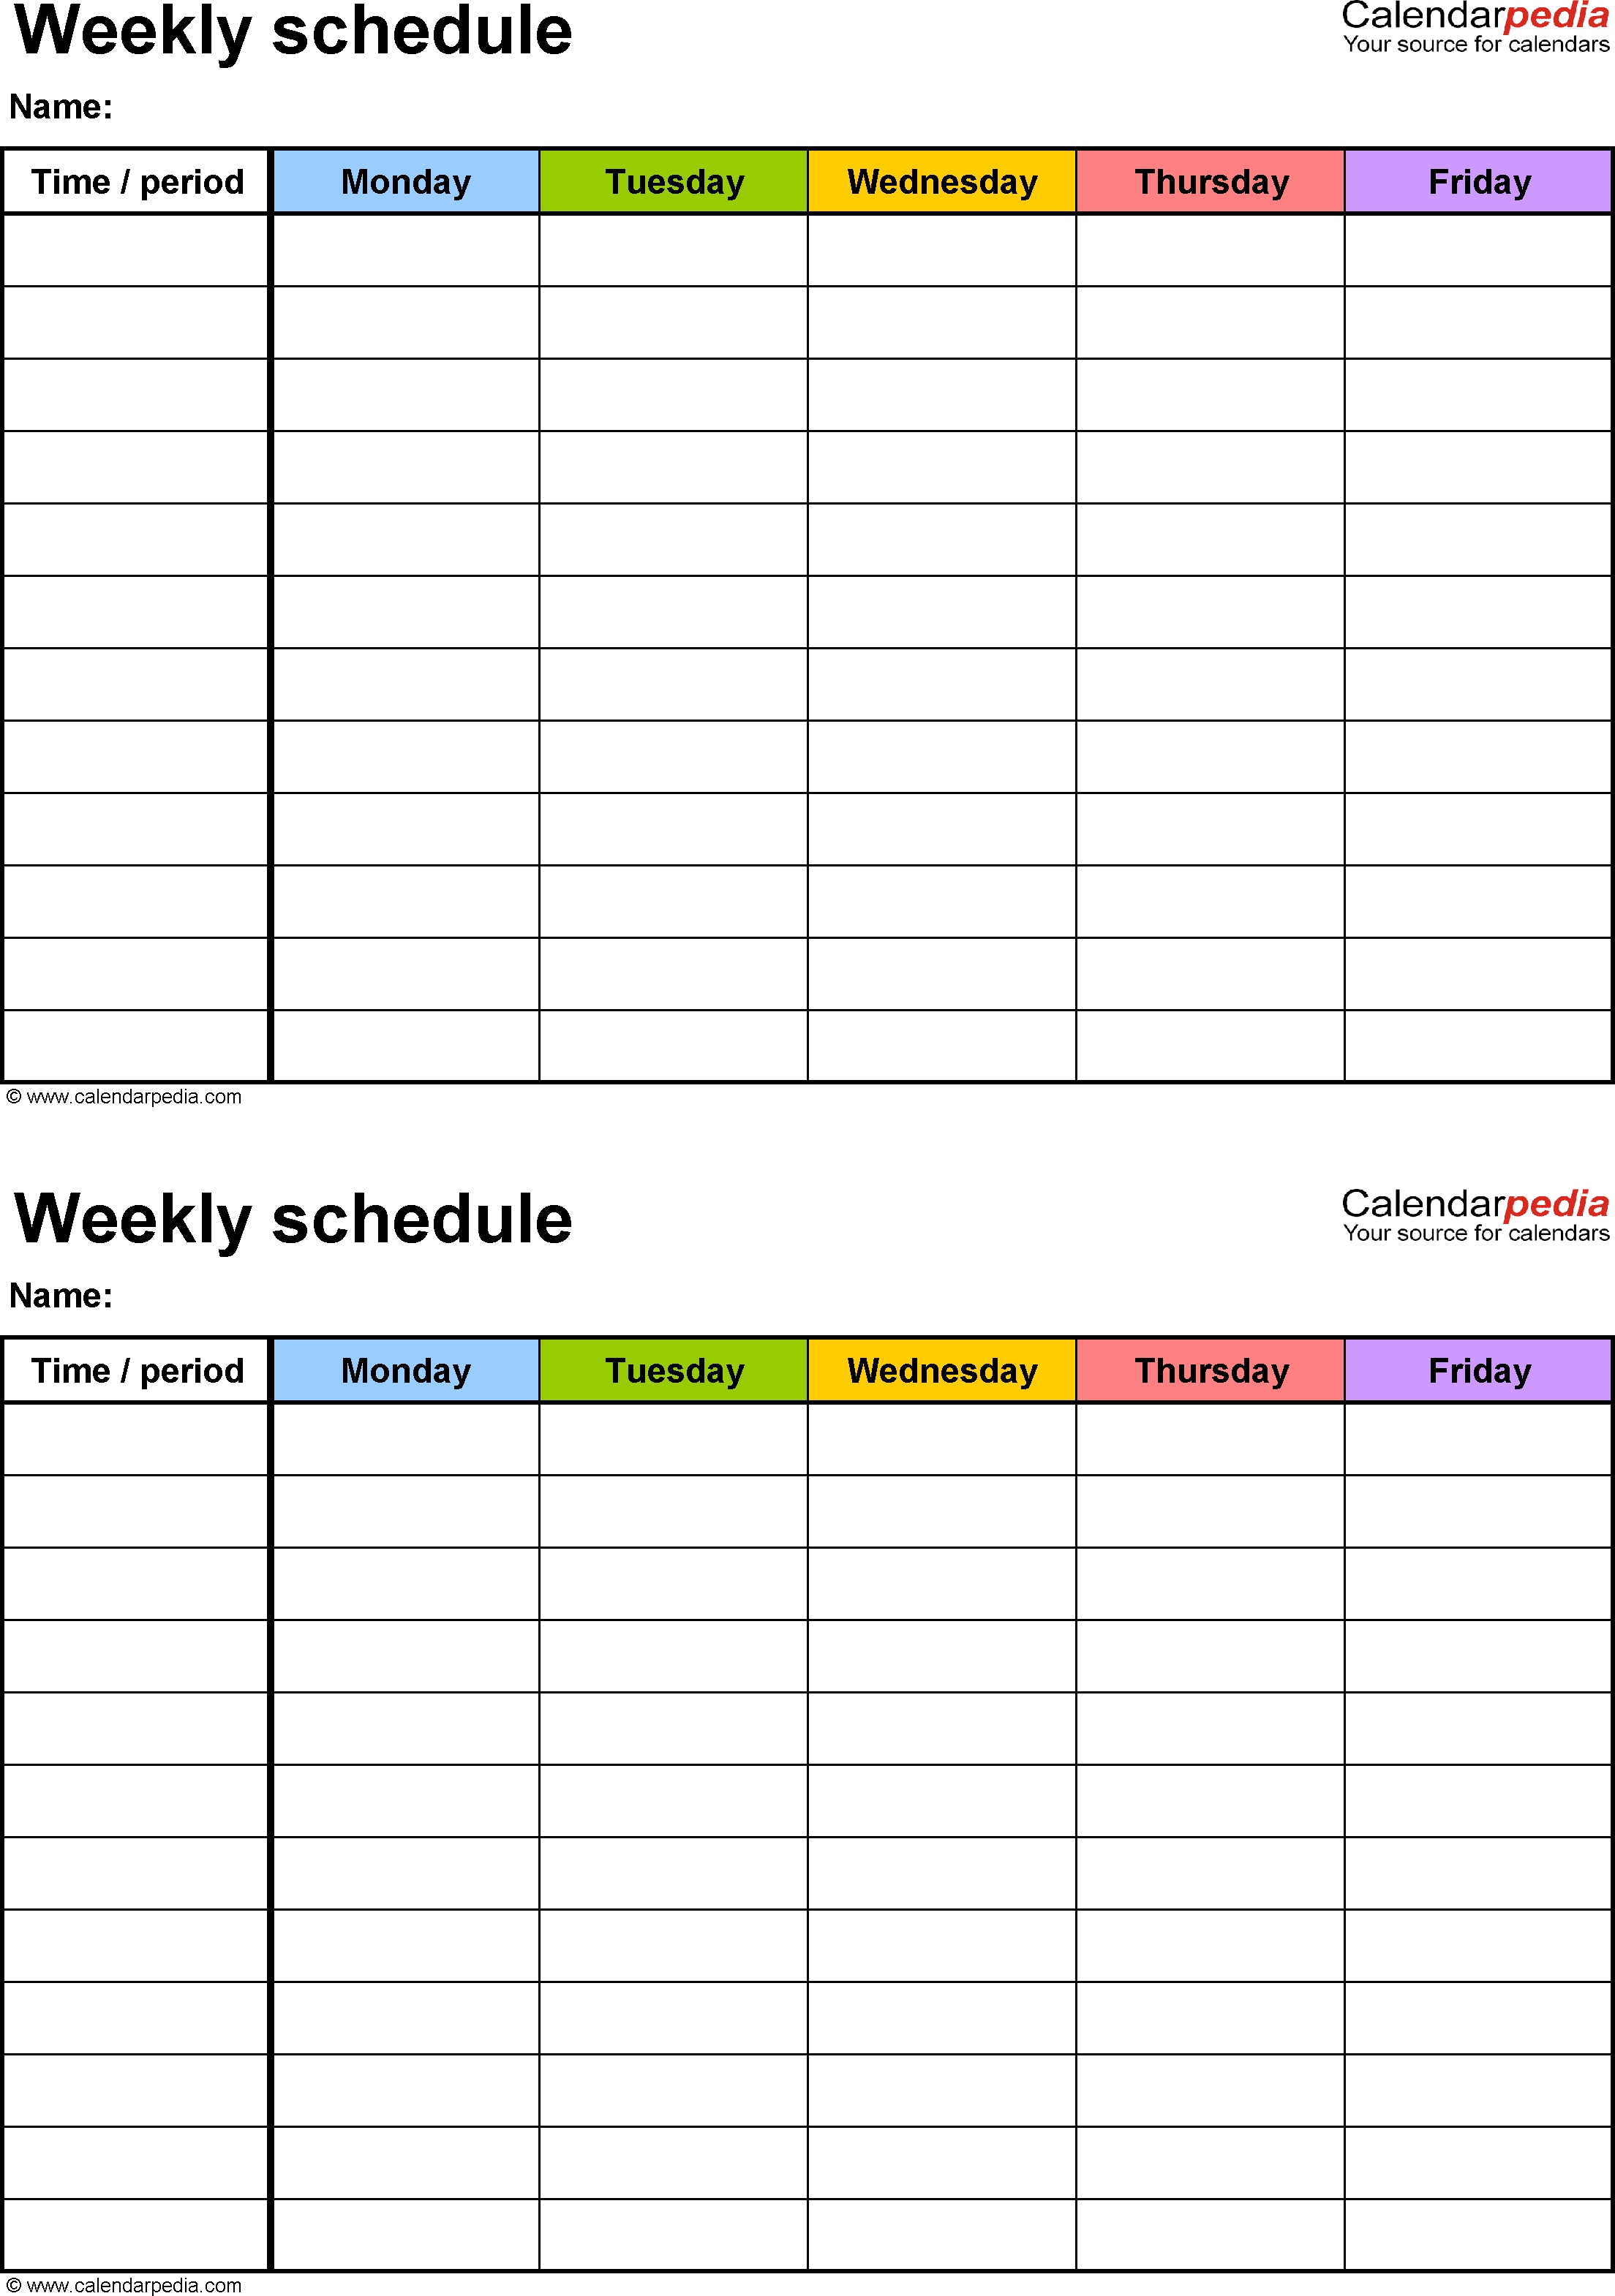 Template Monday To Friday | Calendar Template Printable Monday To Friday Schedule Template